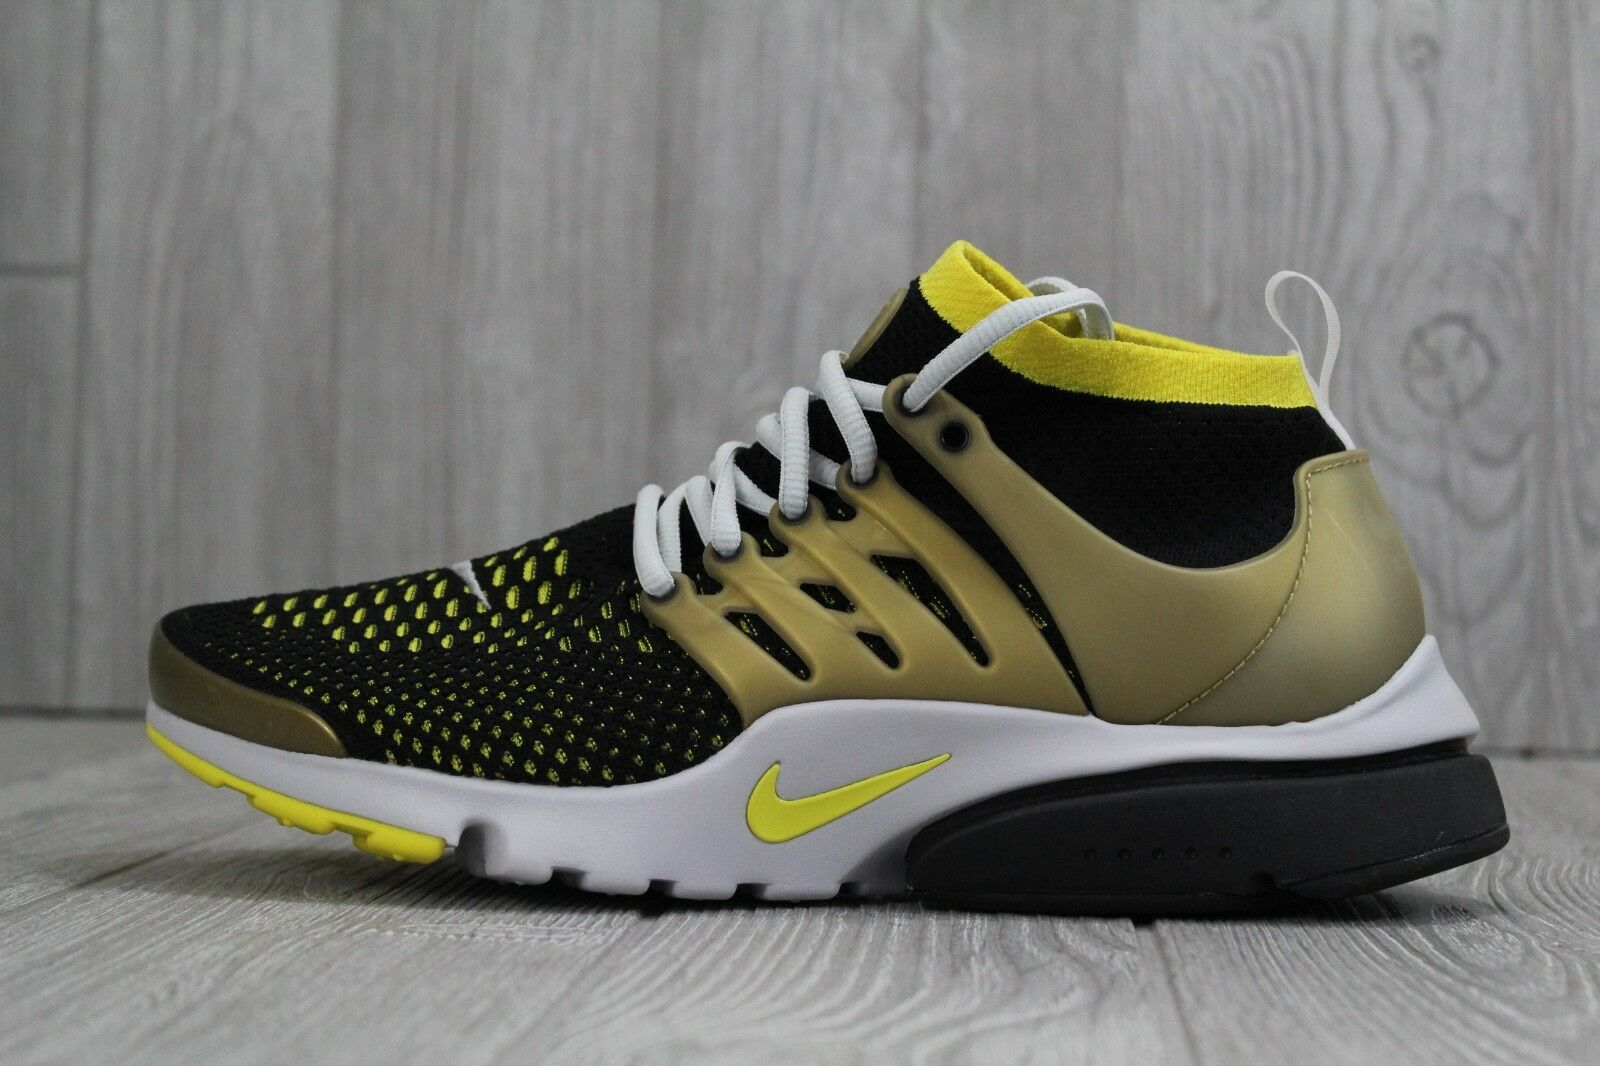 31 New Nike Air Presto Flyknit Ultra Mens shoes Black gold Sz 10 835570 007